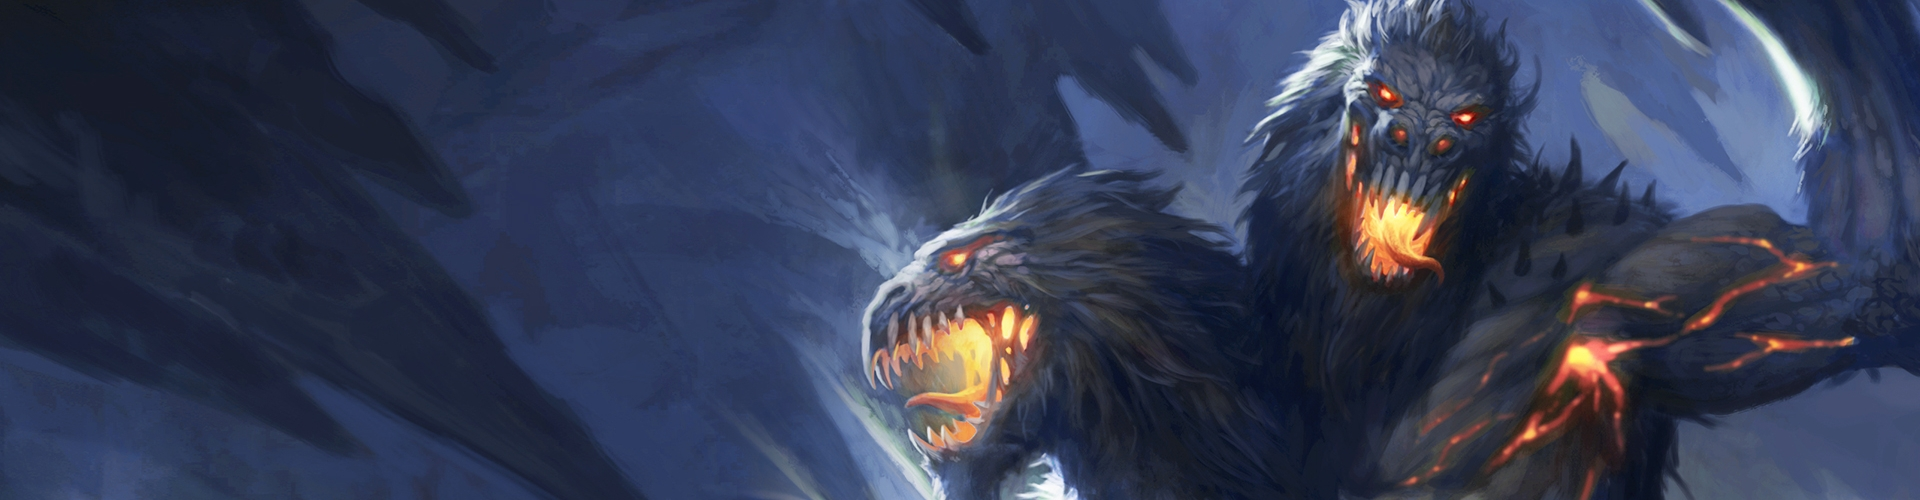 Neverwinter: Demogorgon is in the House